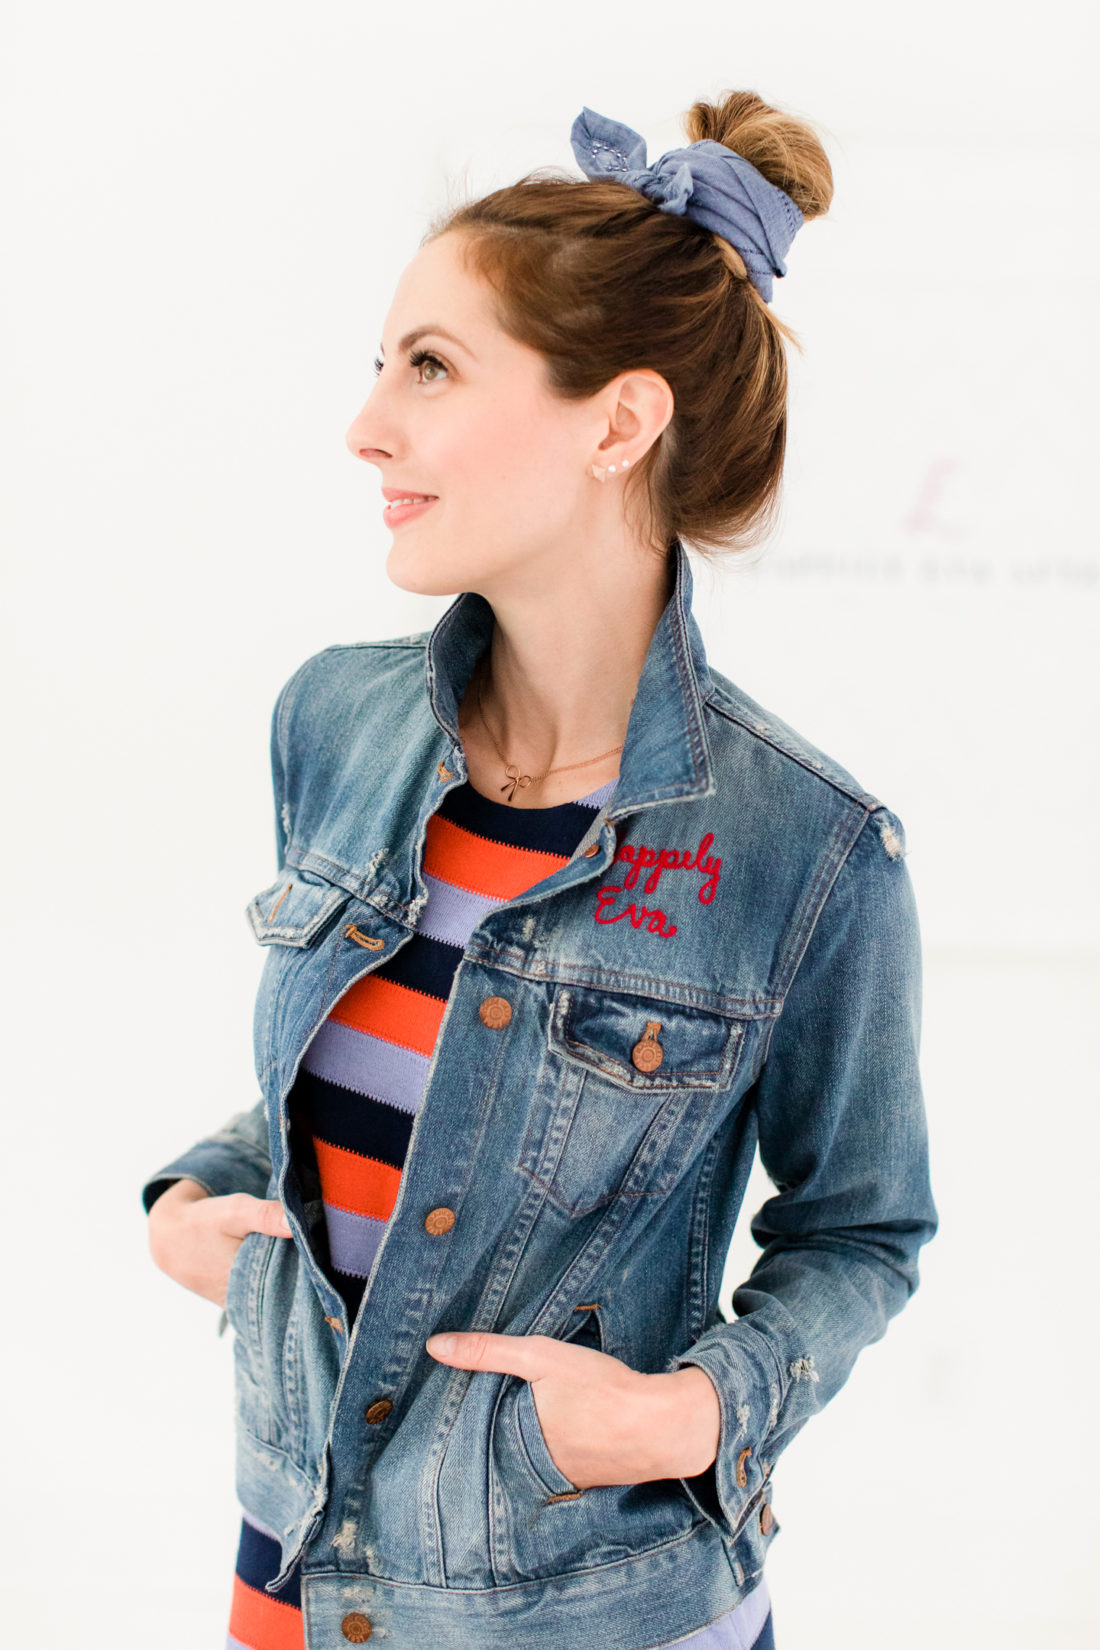 Eva Amurri Martino wears a striped dress and distressed denim jacket while rocking a kerchief bun hairstyle